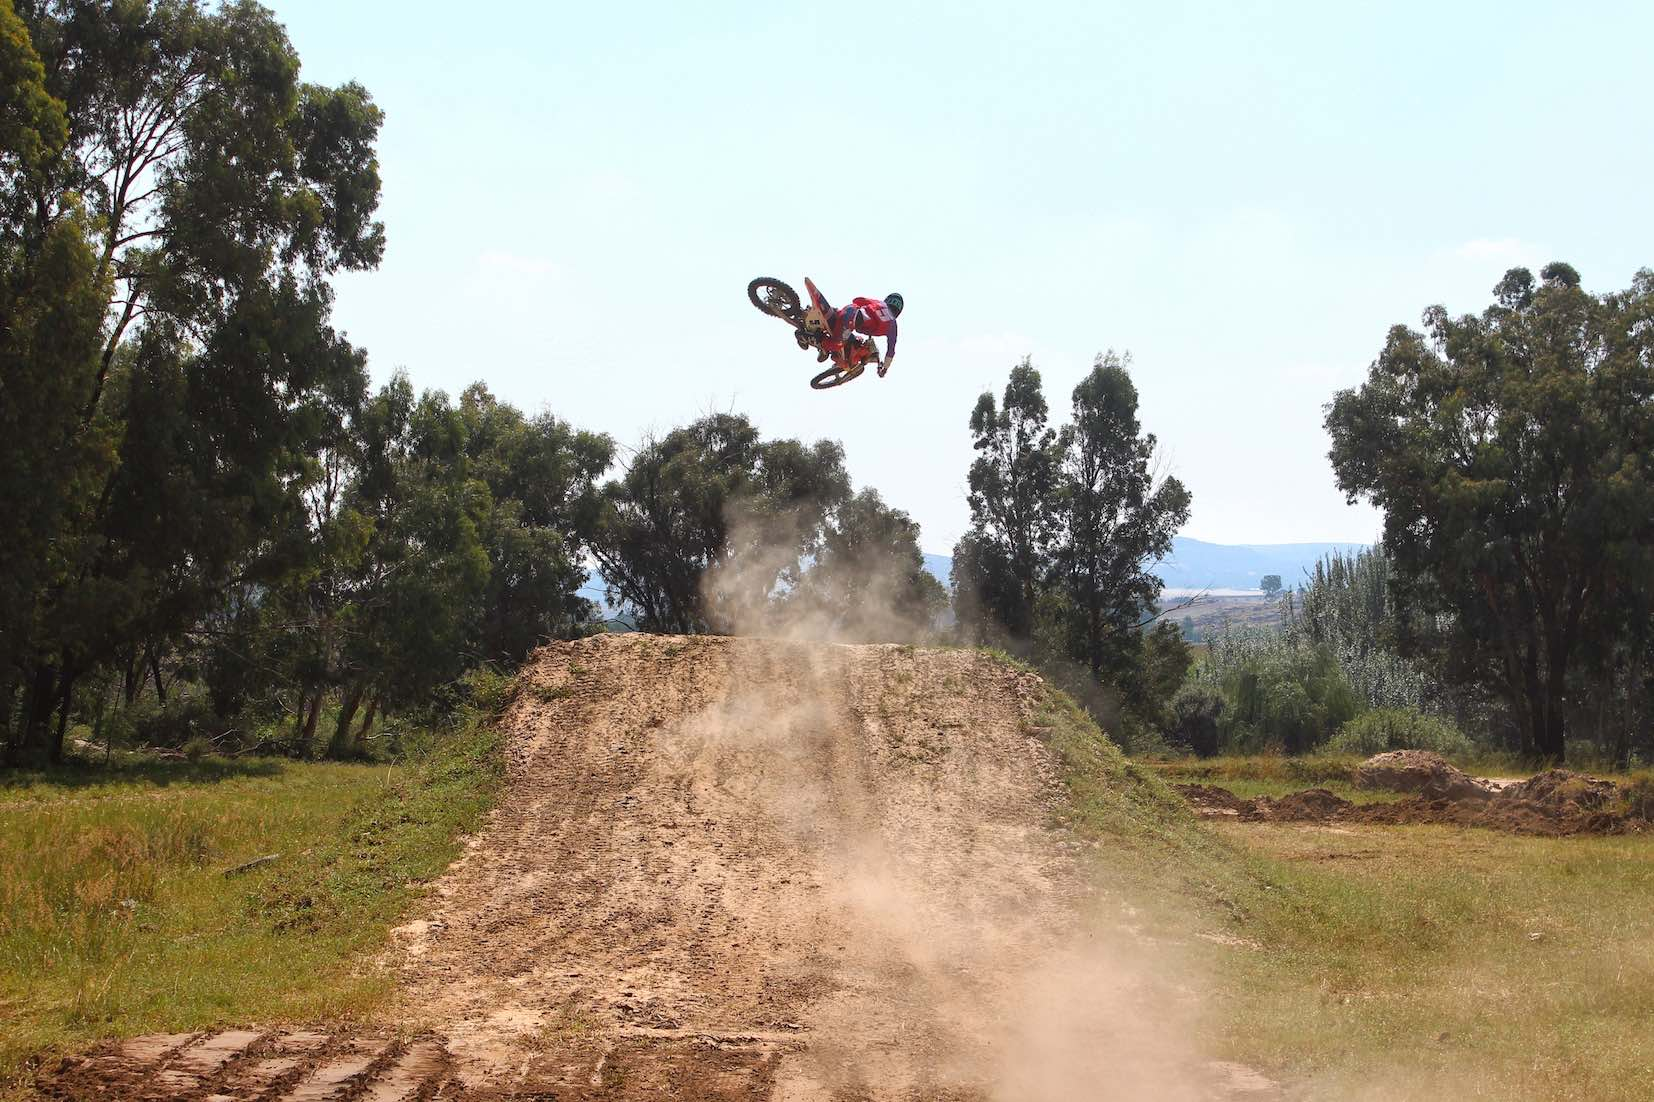 Joshua Mlimi features in the #60to1 motocross video